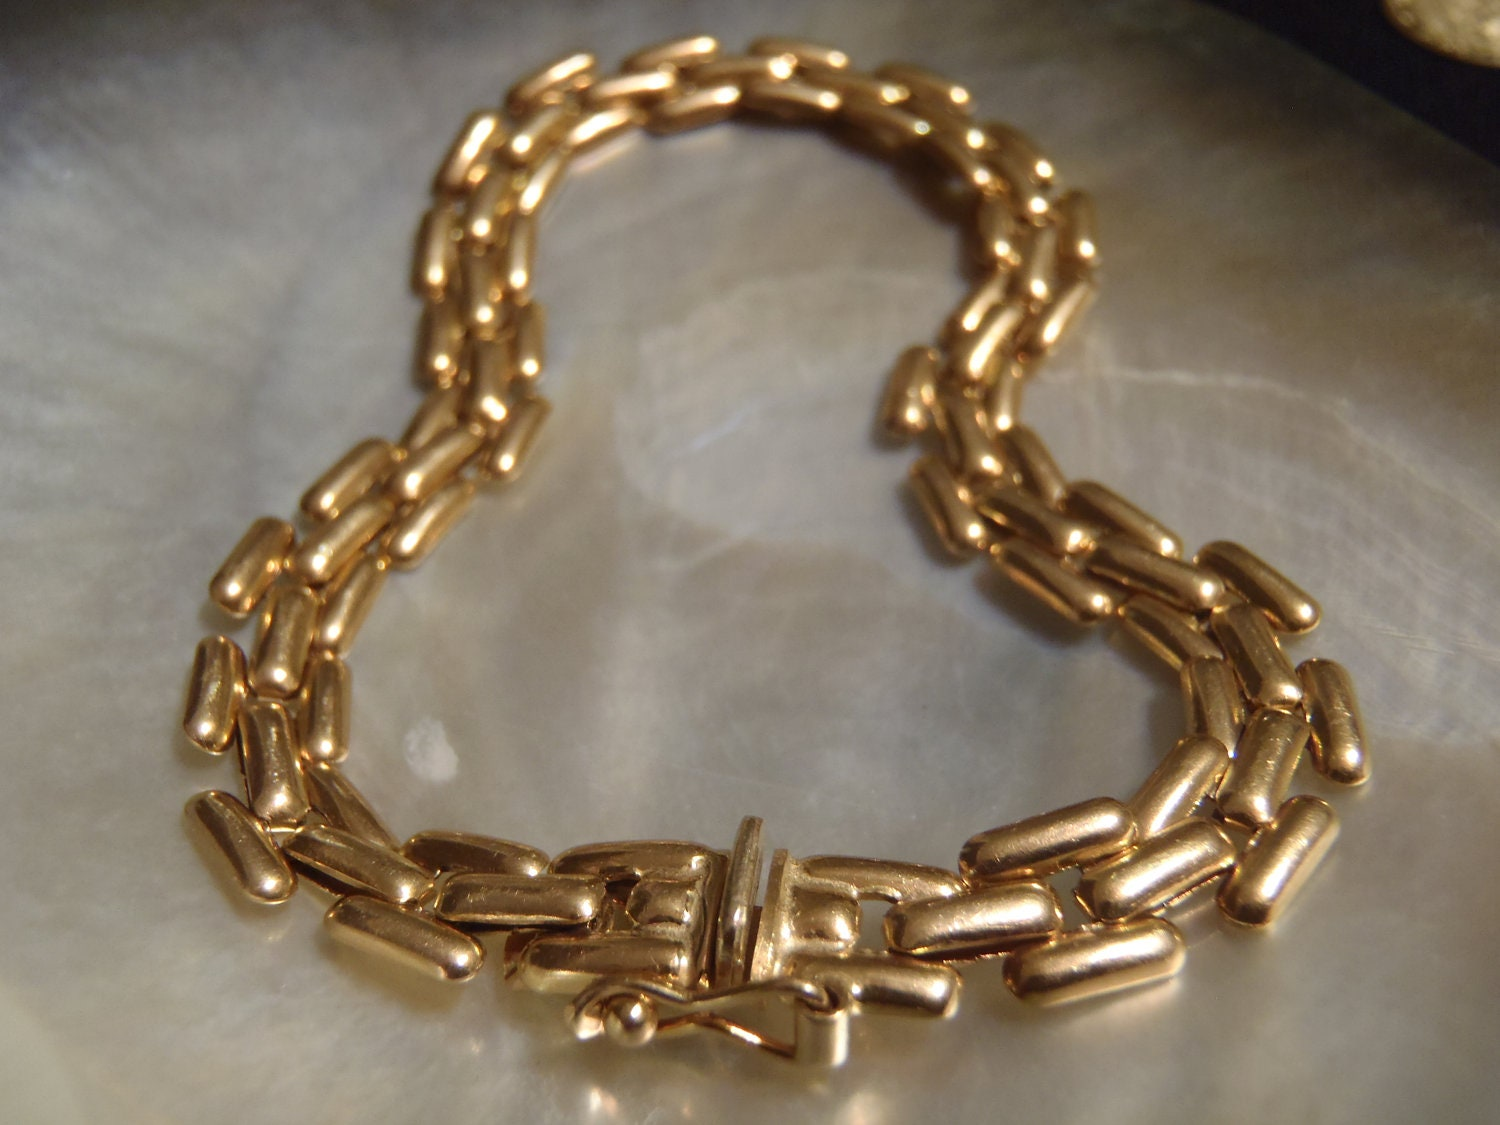 Italian 14k Solid Yellow Gold Panther Link Bracelet